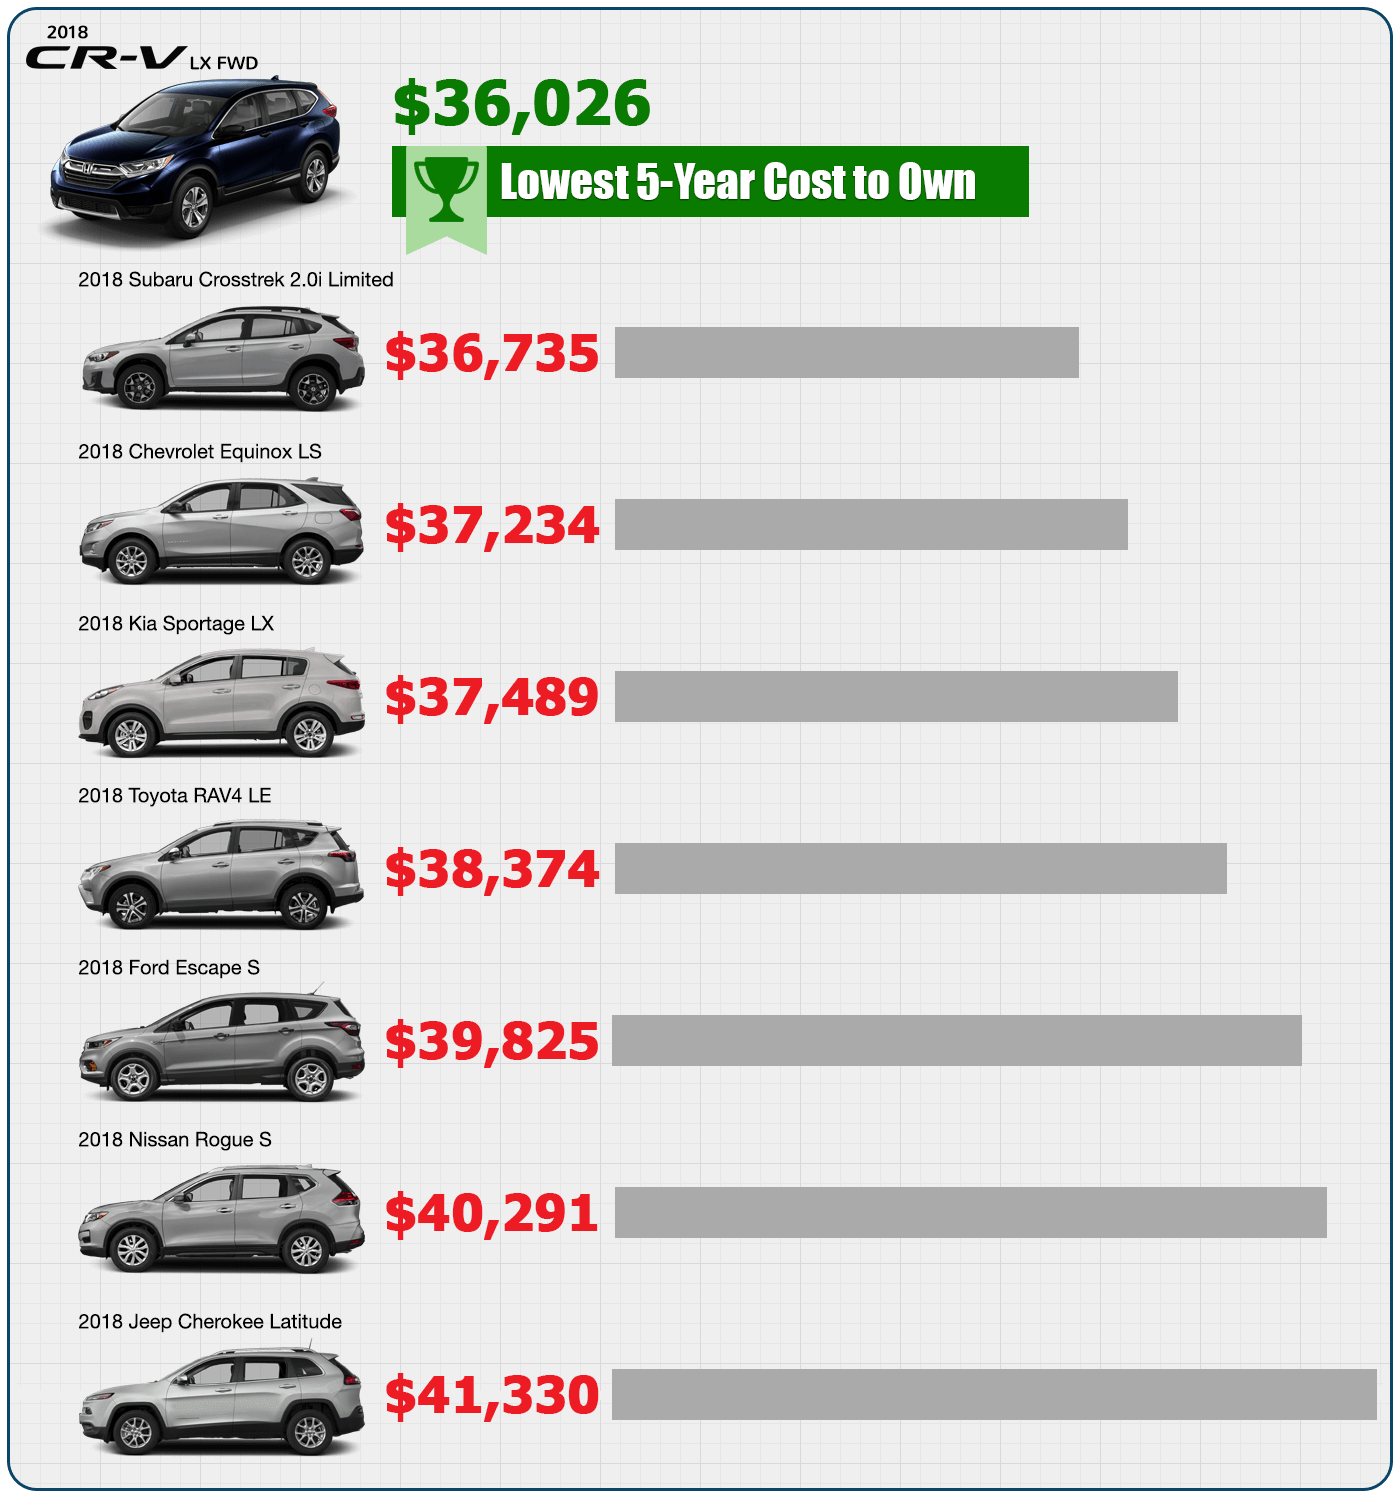 2018 CR-V KBB.com Lowest 5-Year Cost to Own in West Michigan